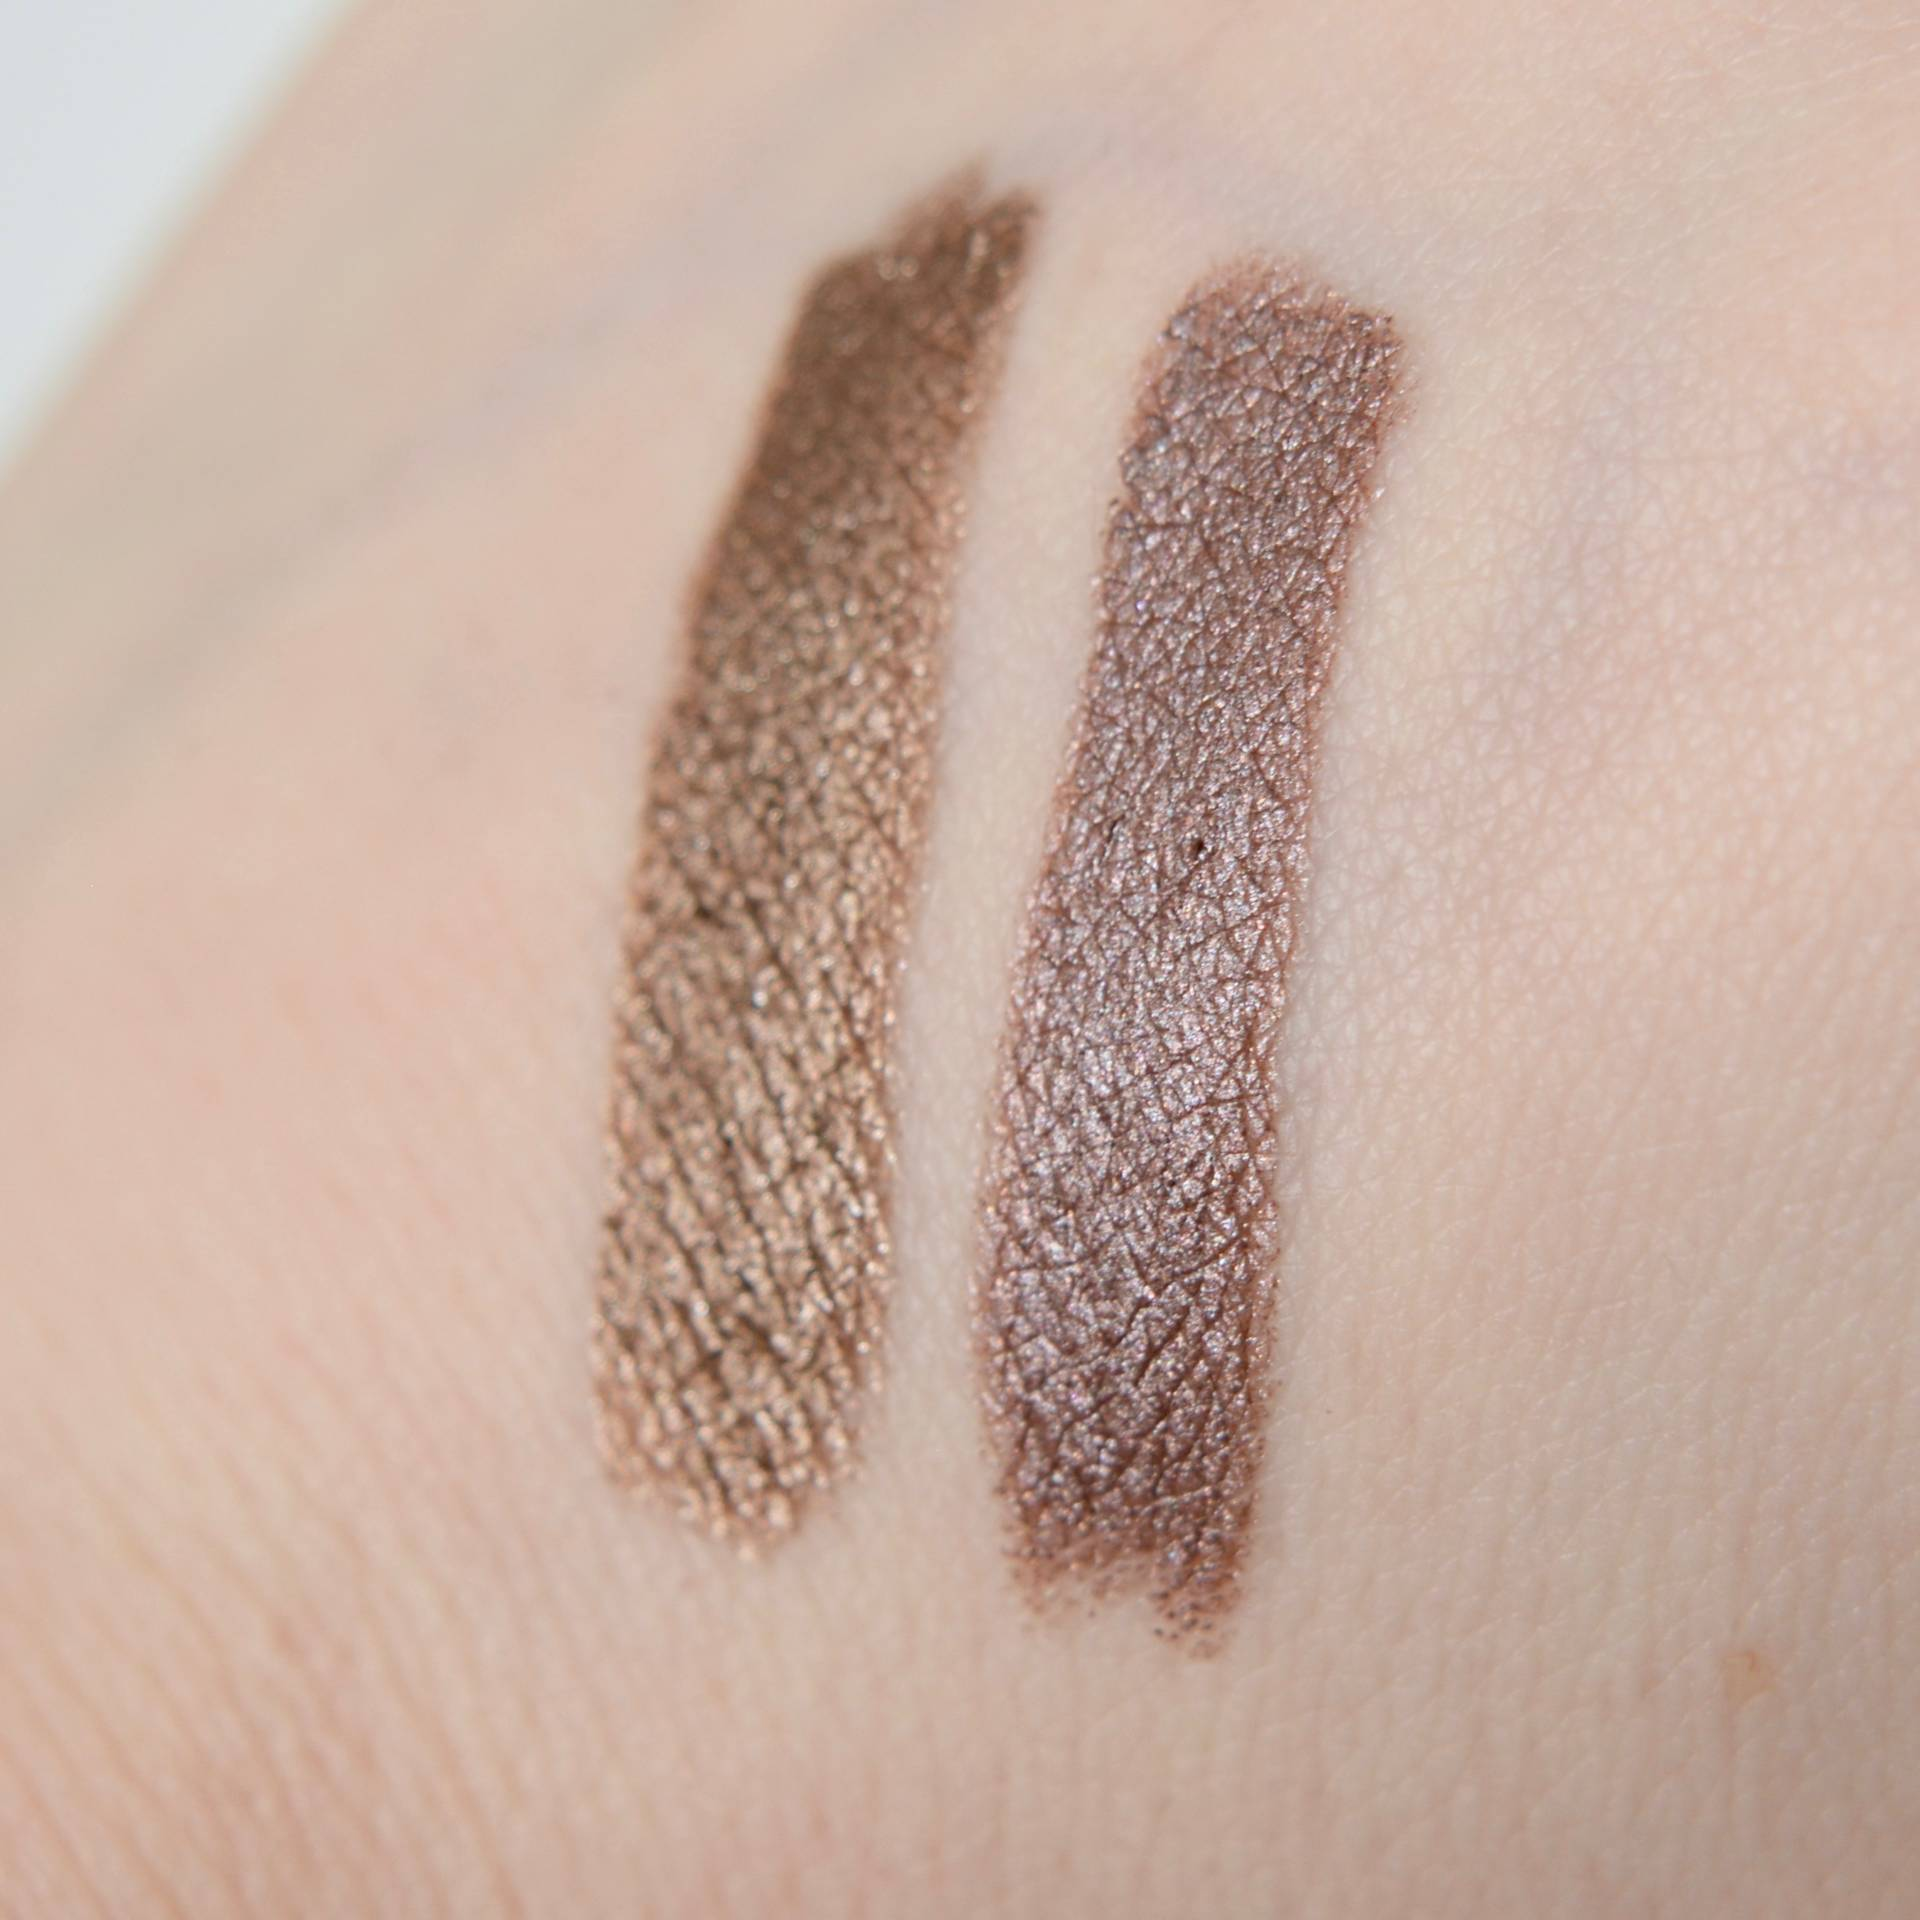 Rosie by Autograph Eyeshadow Sticks swatches